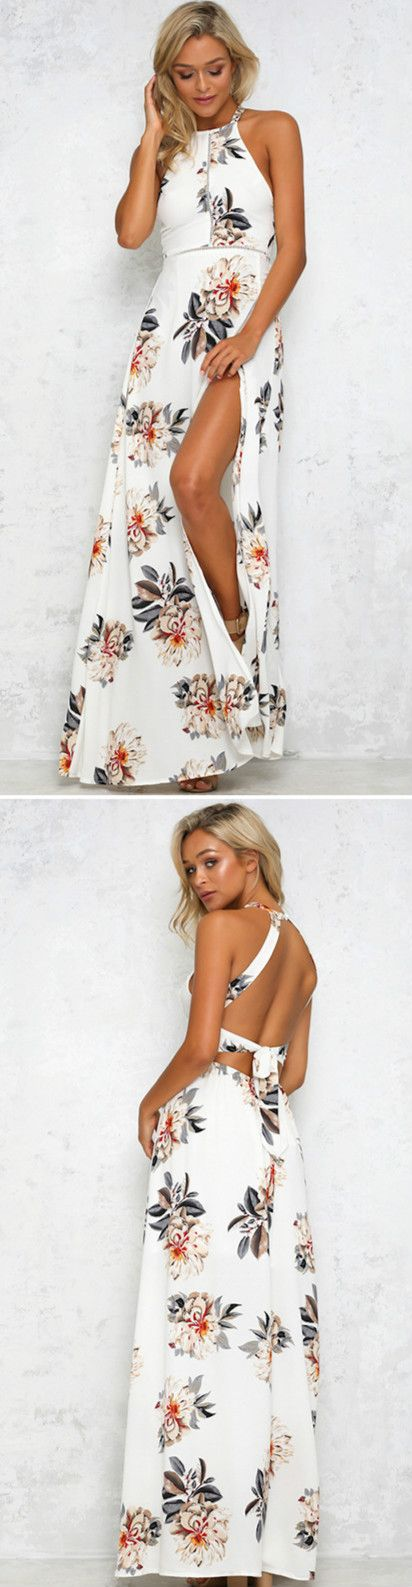 Elegant Halter Neck Floral Print Maxi Dress